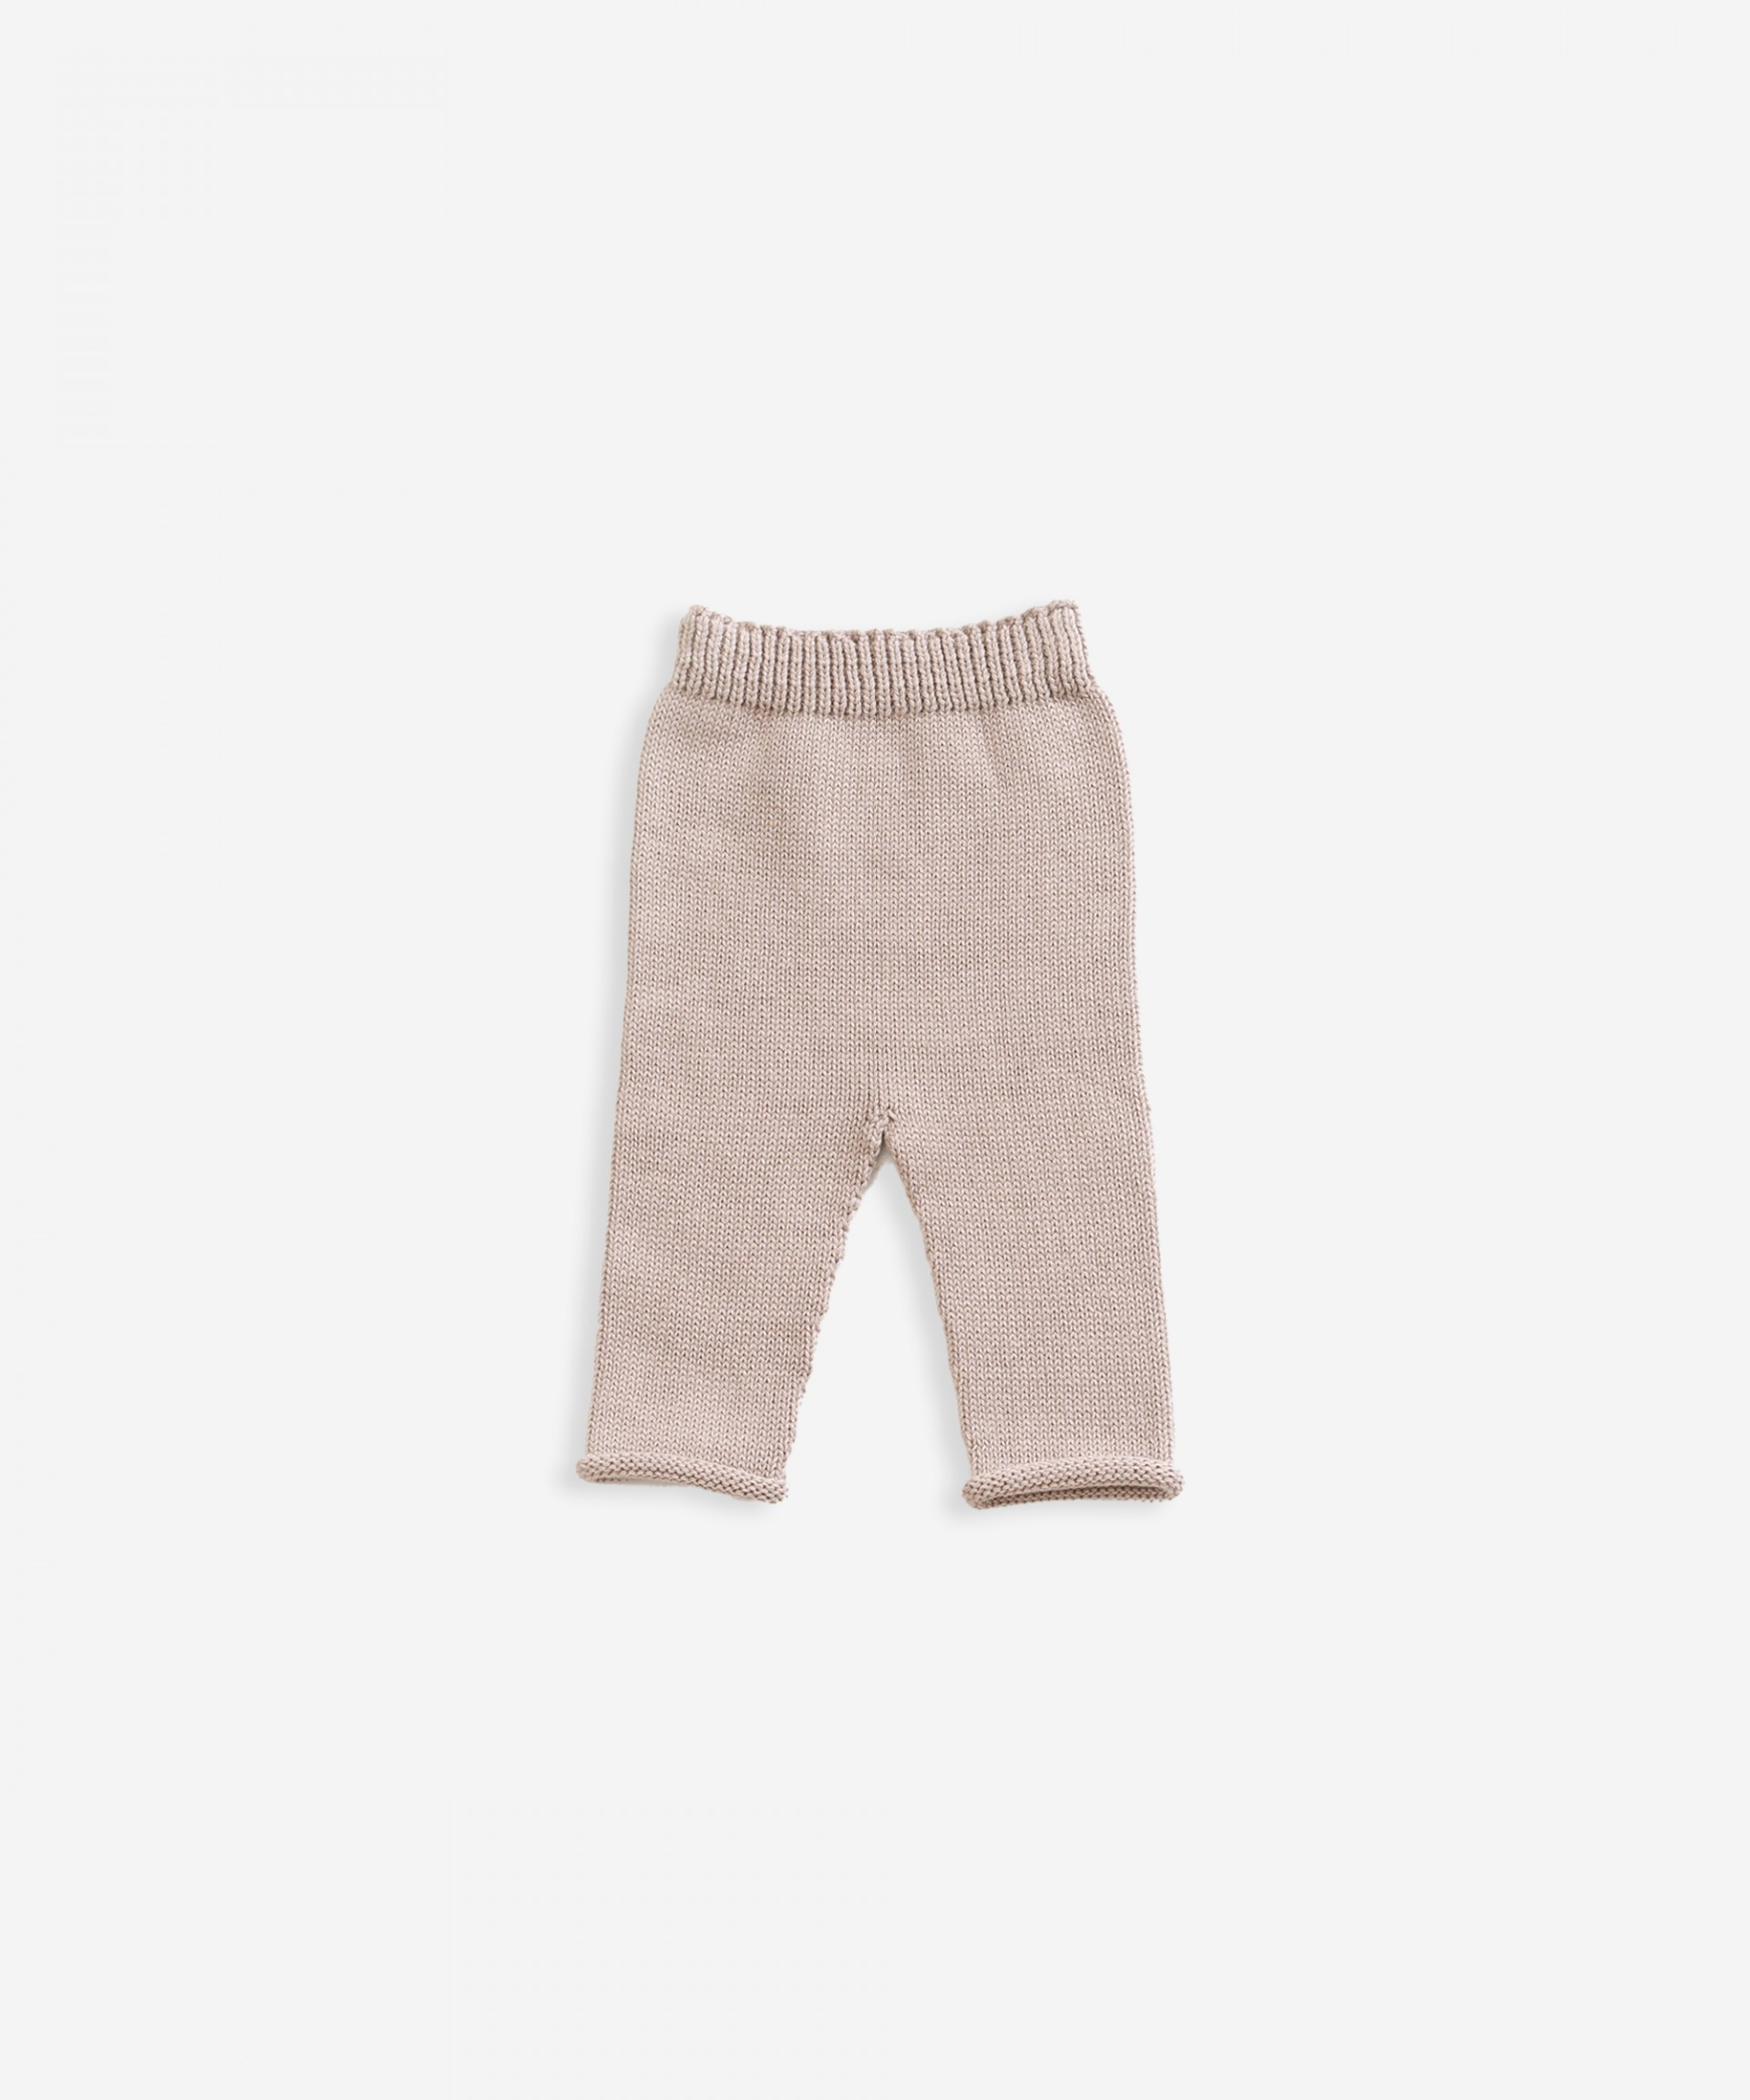 Trousers in organic cotton | Weaving